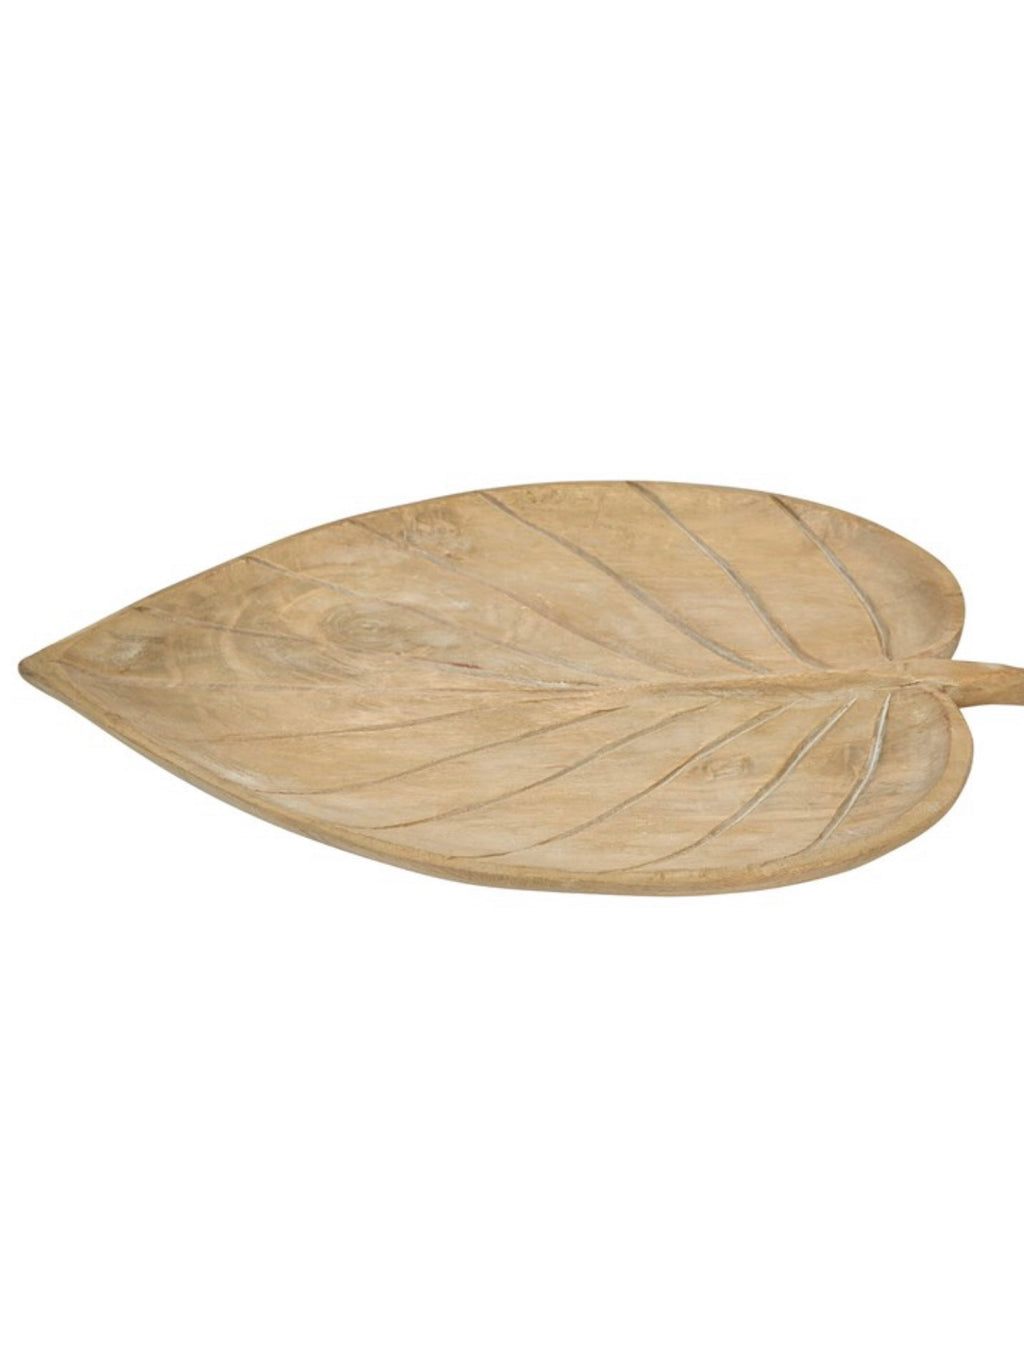 Hand-Carved Wood Leaf Tray